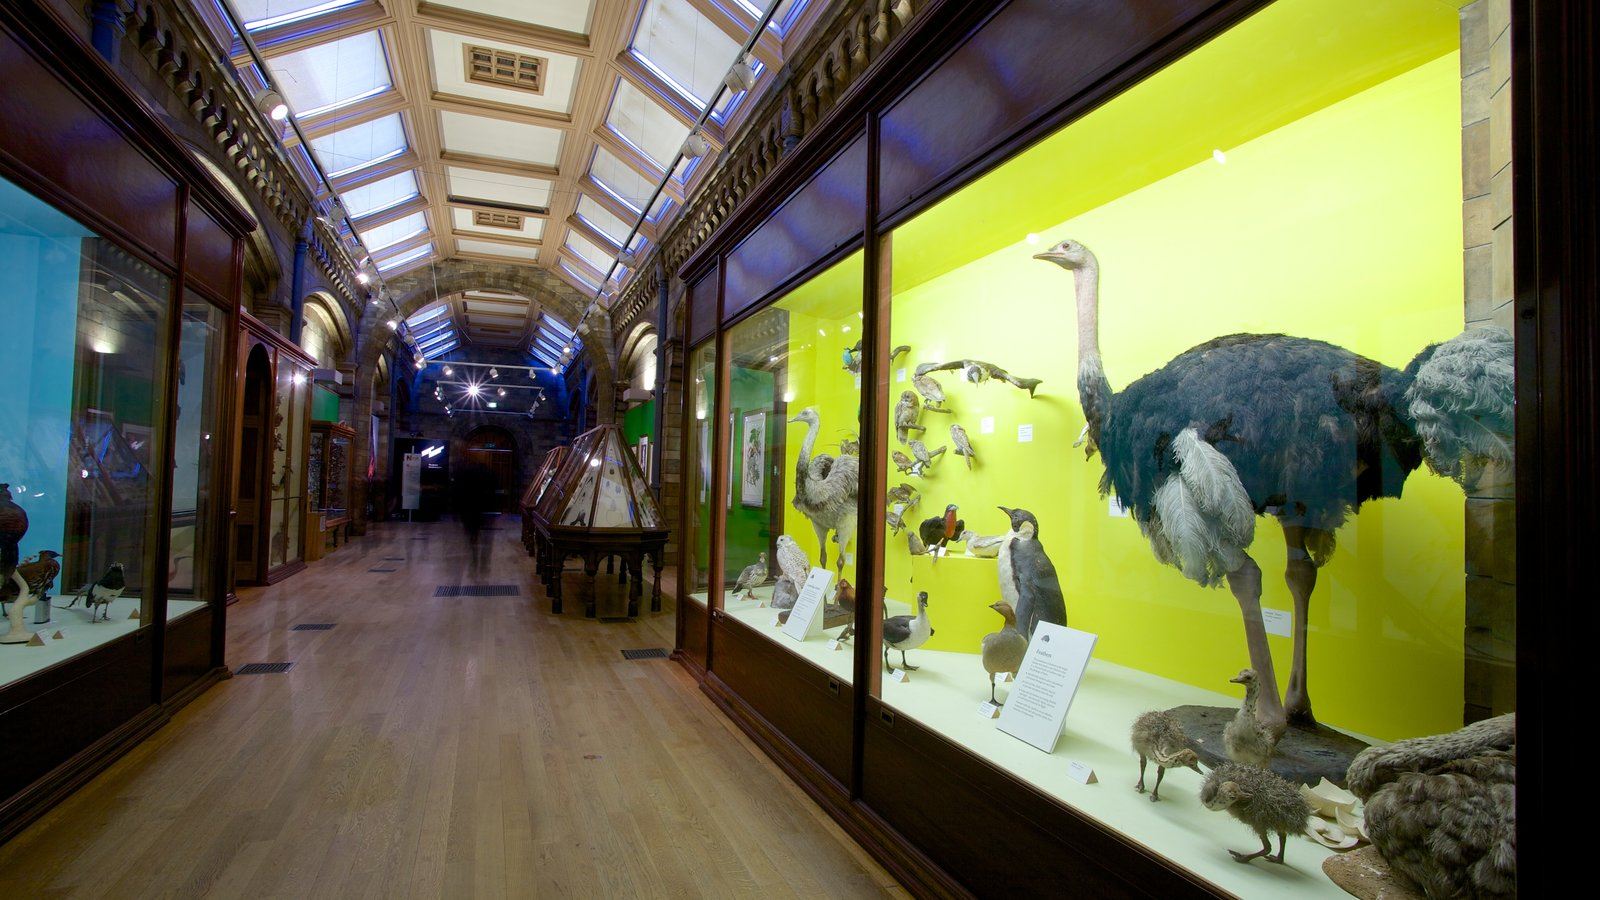 London Natural History Museum which includes heritage architecture, heritage elements and interior views